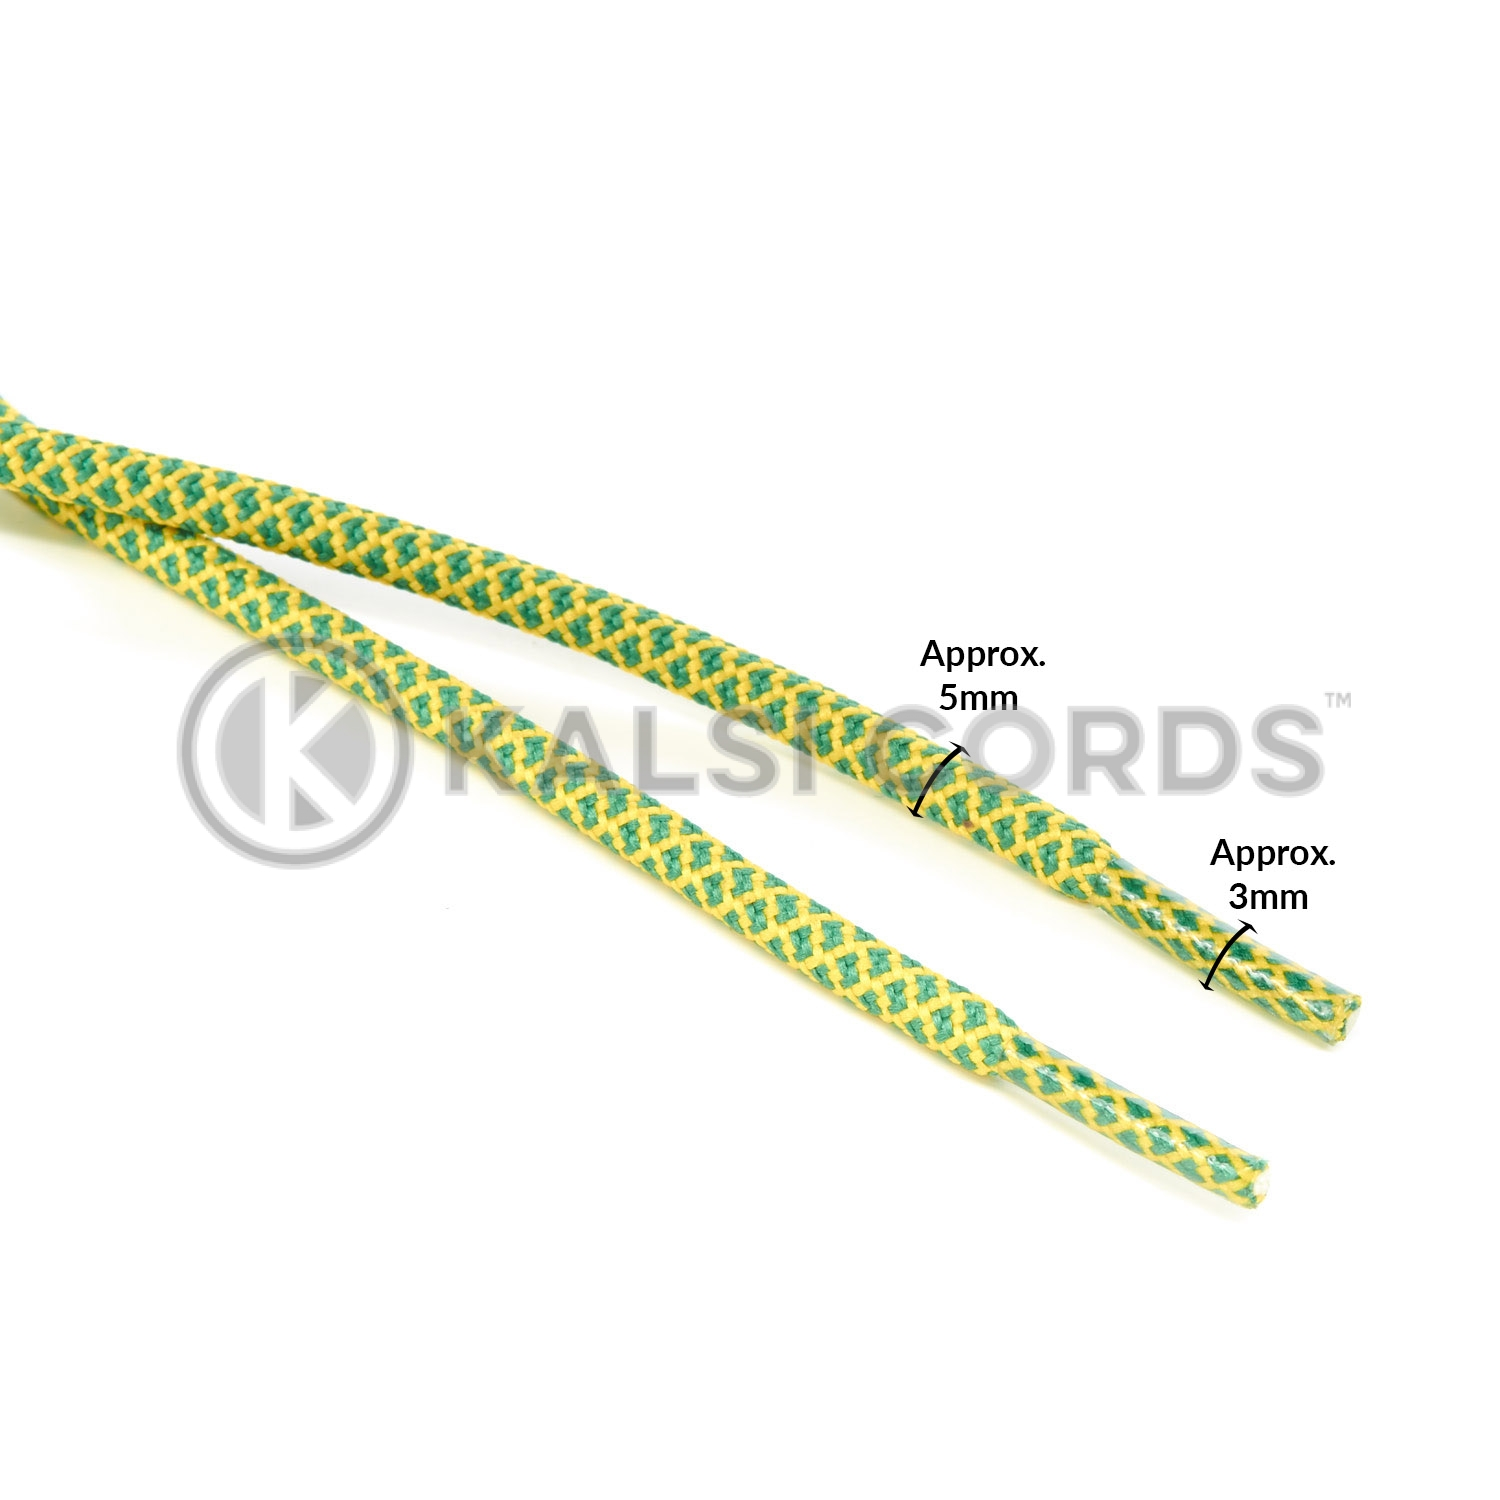 T655 5mm Round Cord Honeycomb Shoe Laces Emerald Green Yellow Kids Trainers Adults Hiking Walking Boots Kalsi Cords